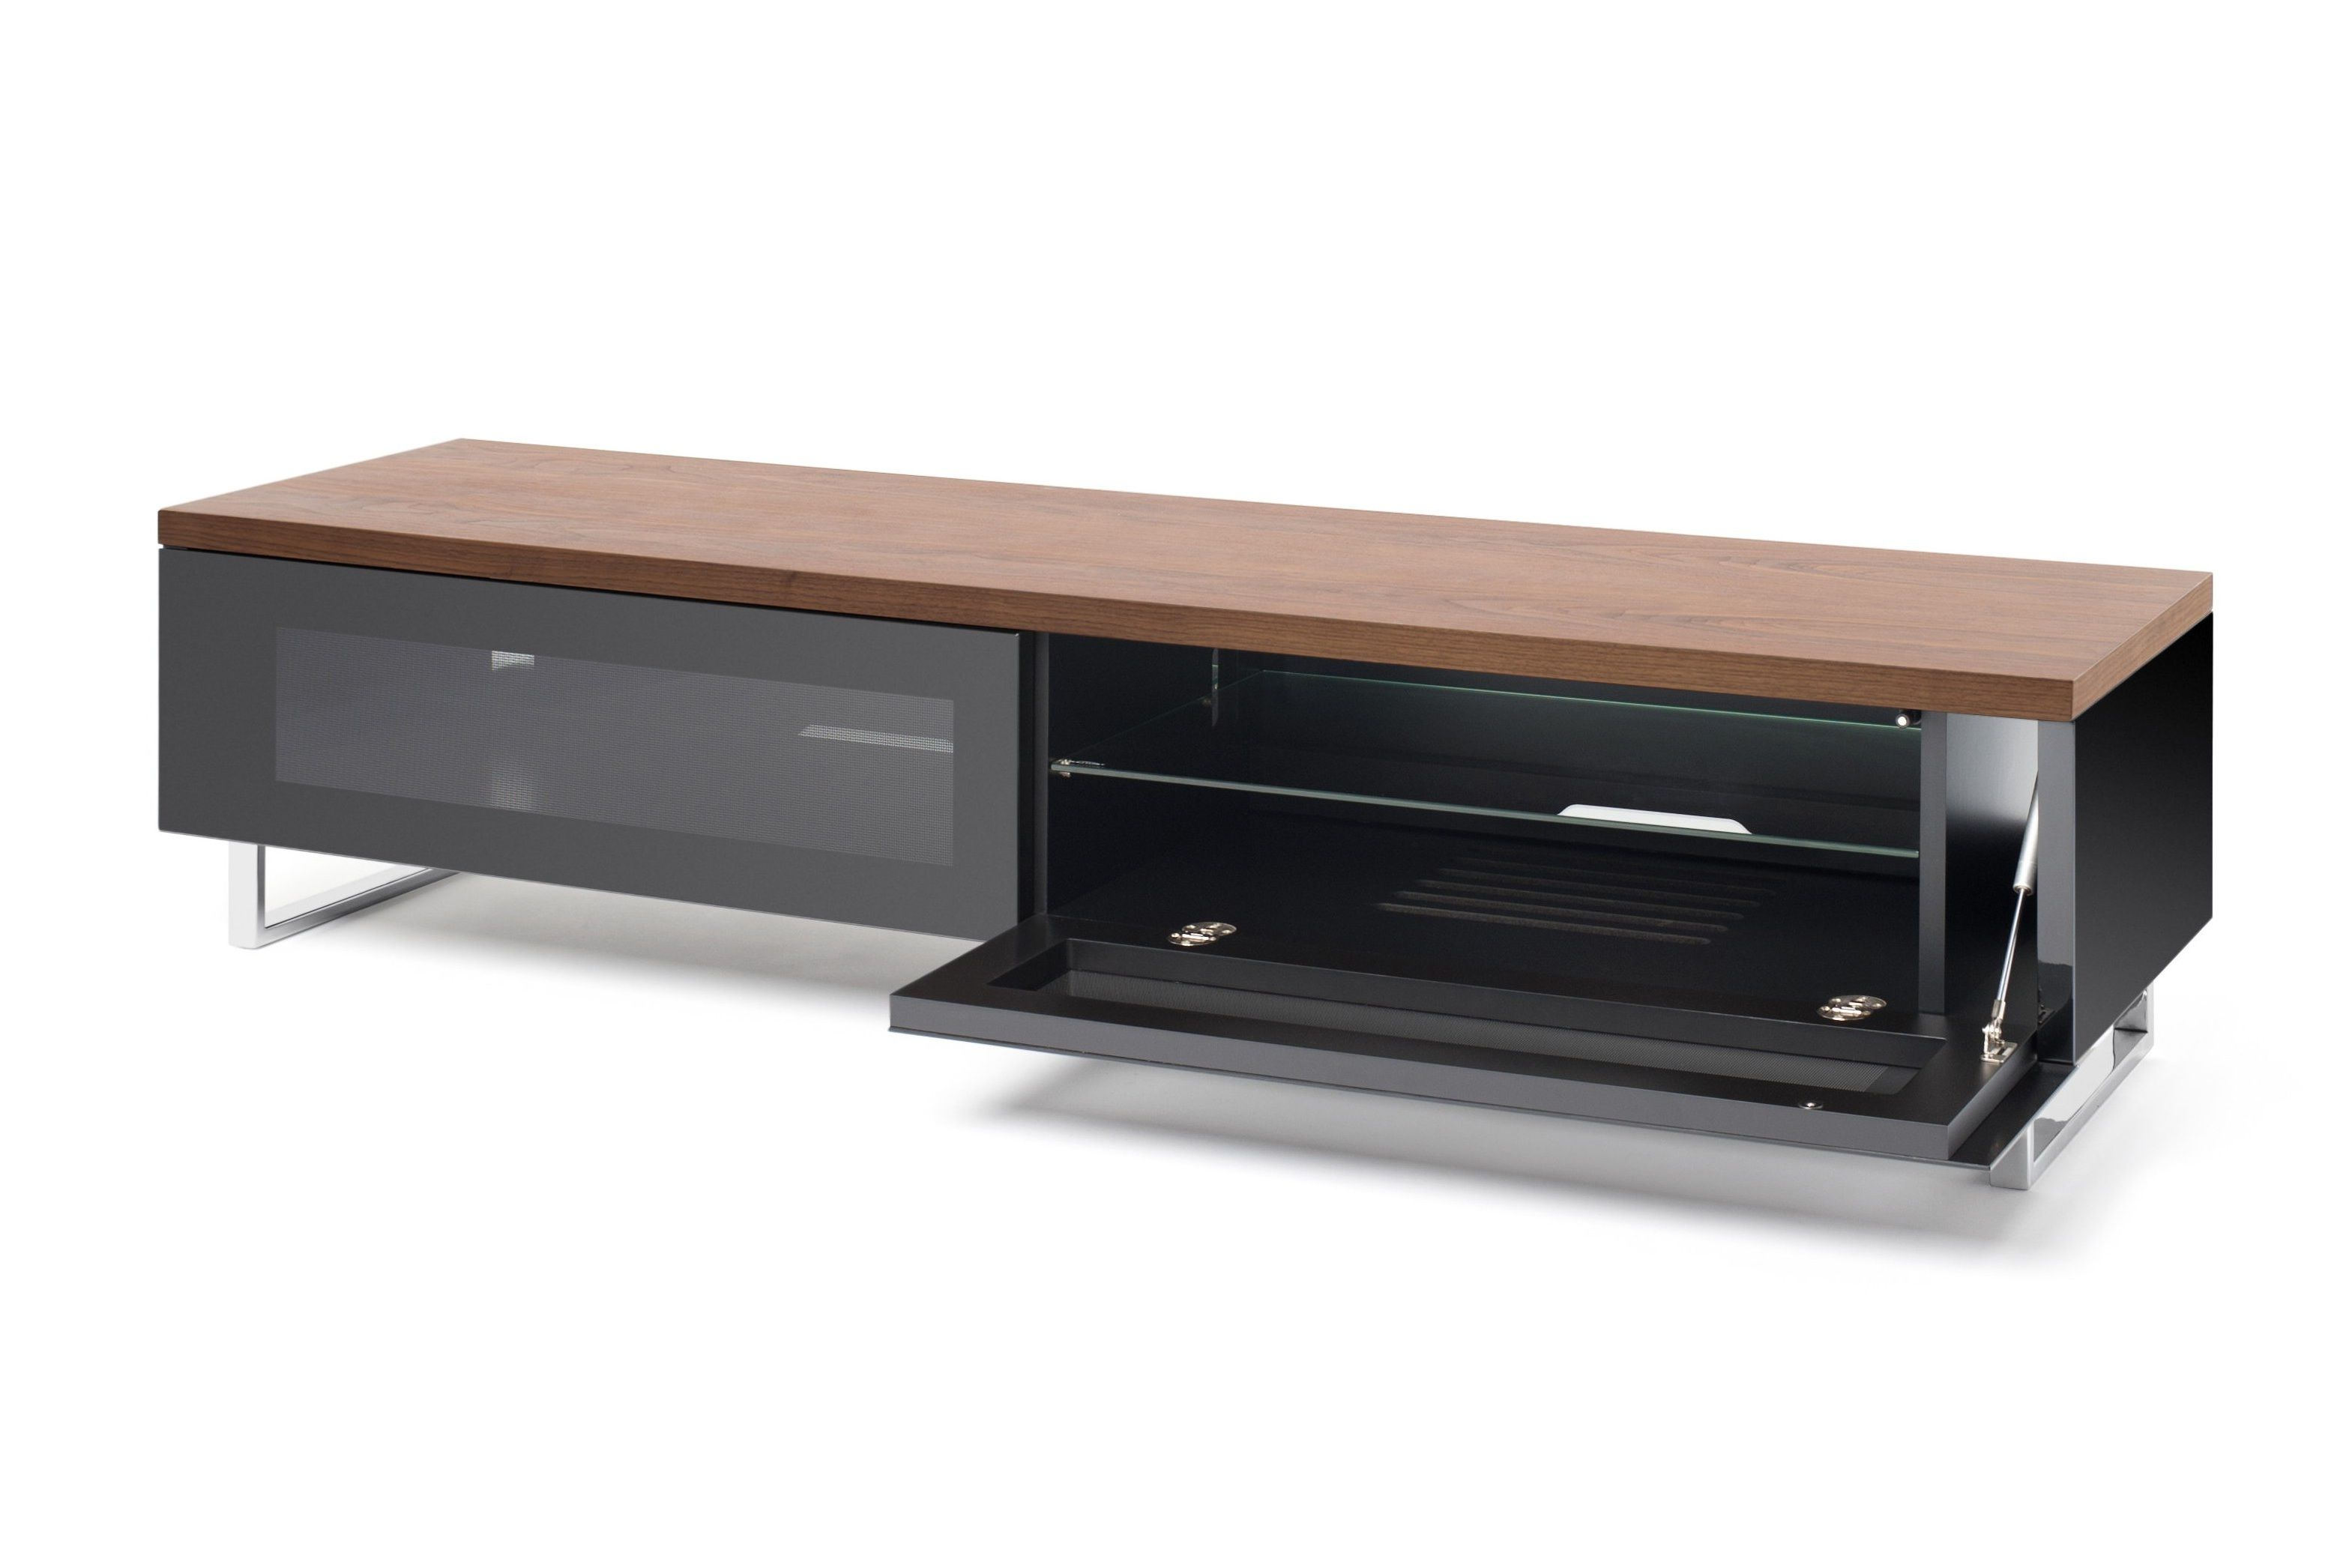 Awesome Low Profile Tv Stand Entertainment Center Kitchen Cabinet Design Low Profile Tv Stand